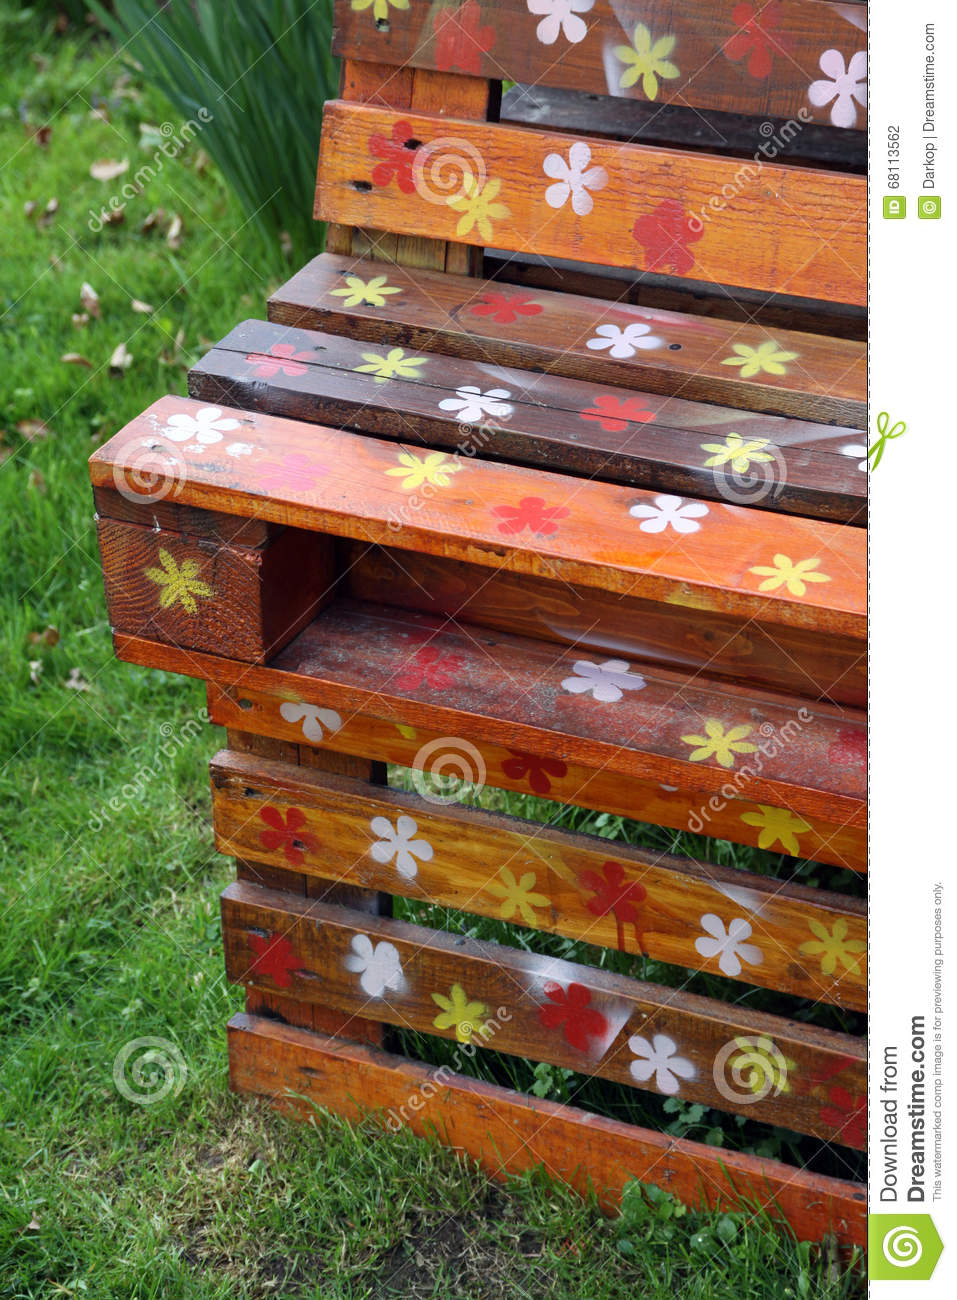 Old Wooden Pallets And Garden Furniture Stock Photo - Image of ...